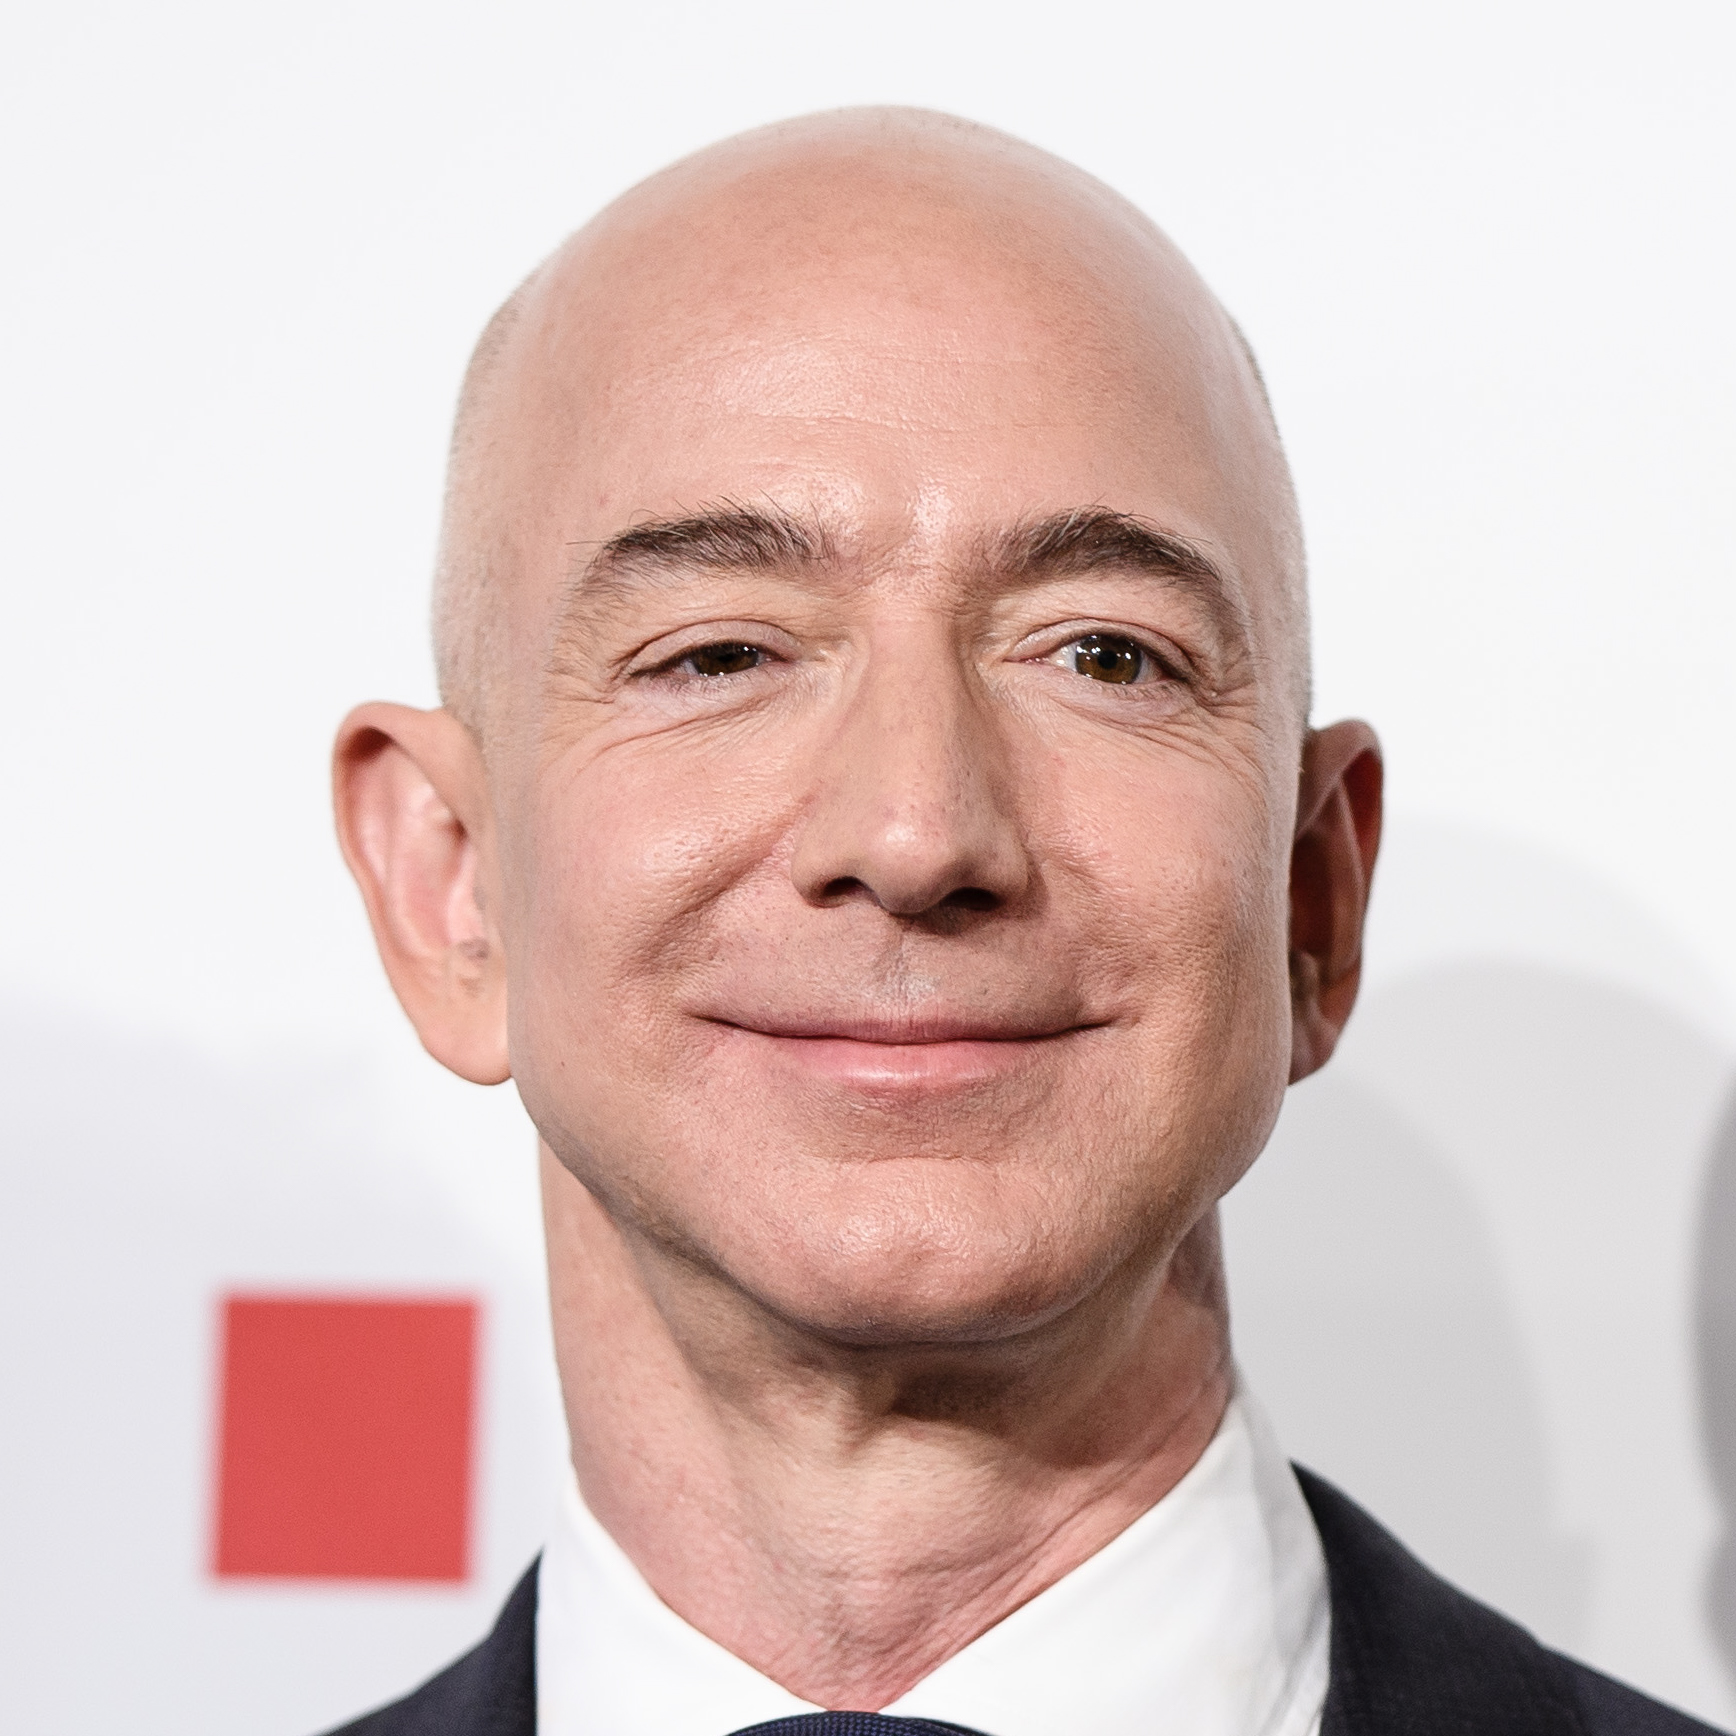 founder jeff bezos is richest person the